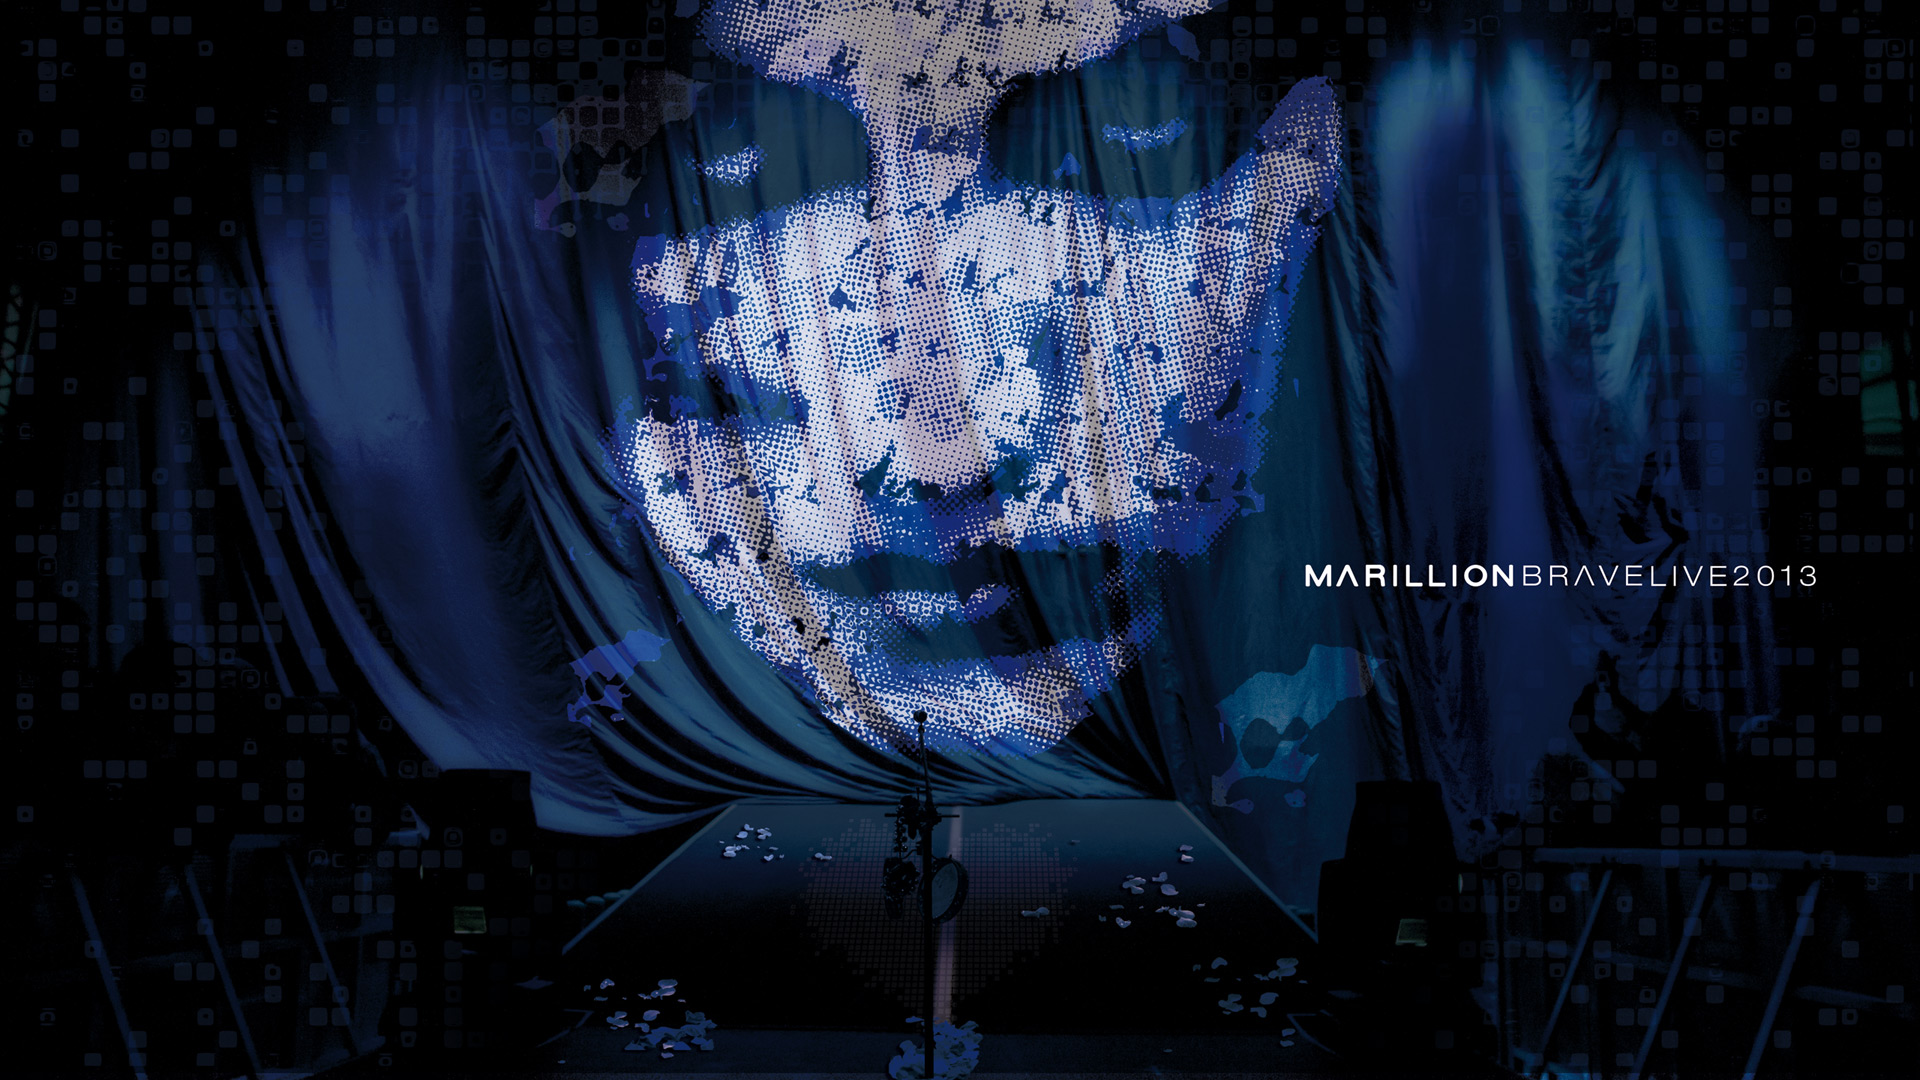 Iphone X Wallpaper Official Marillion Com The Official Marillion Website